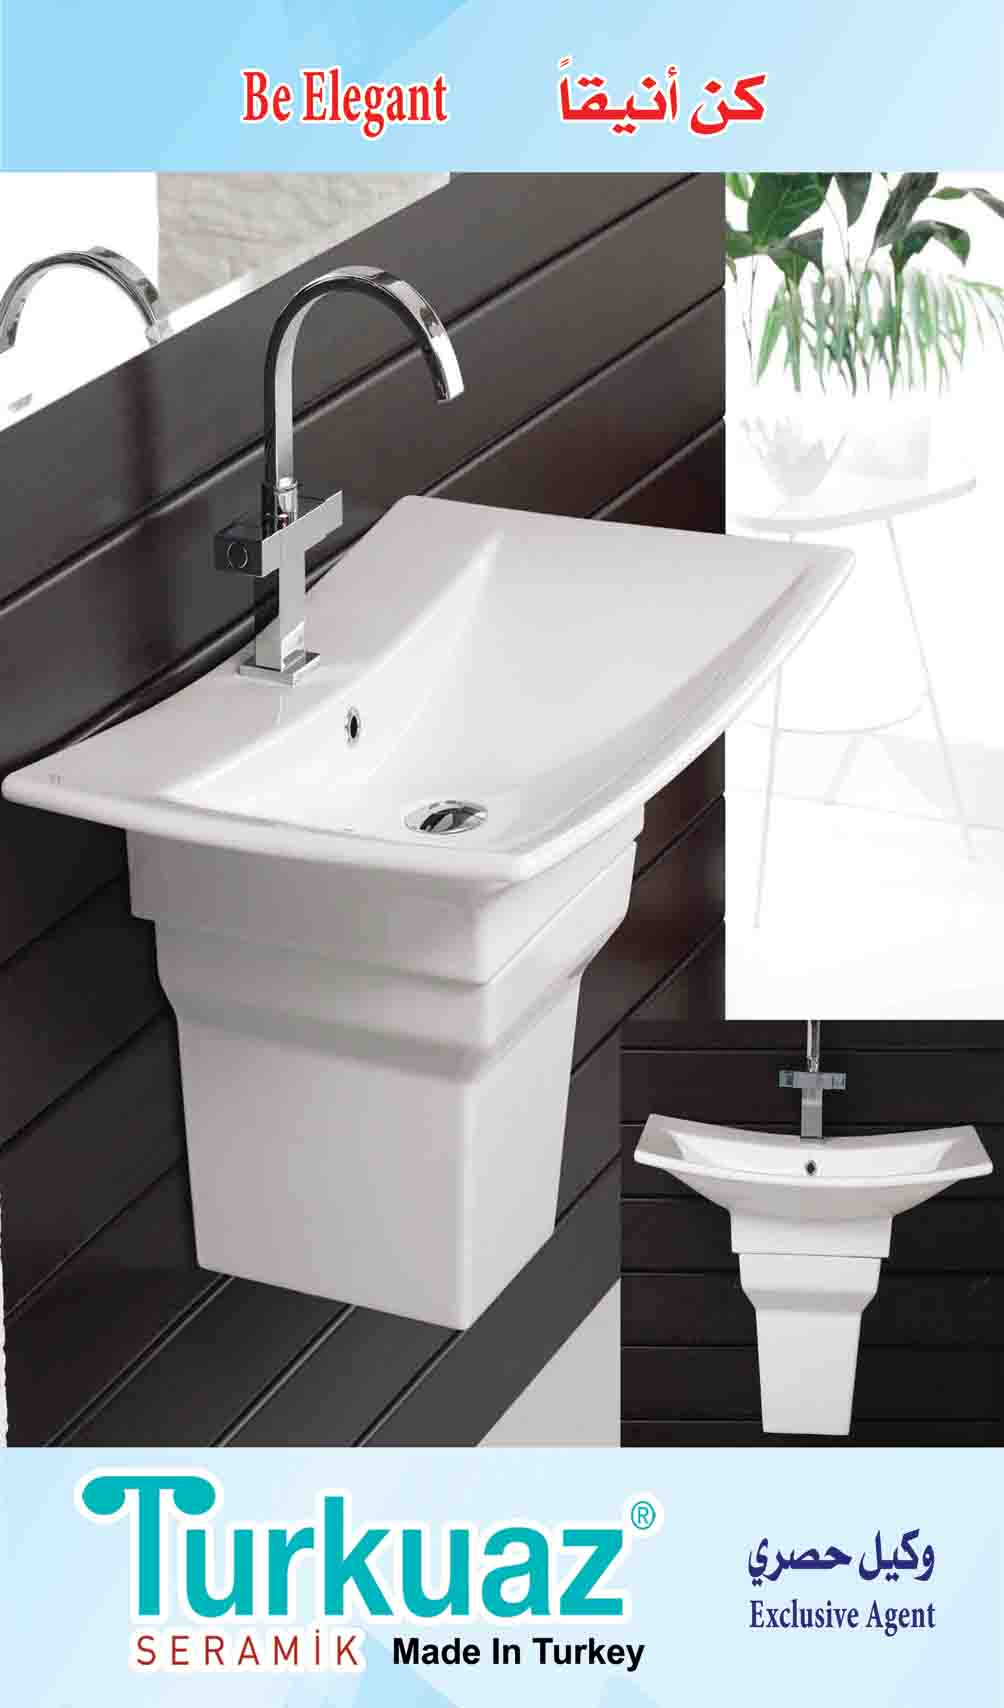 Turkish product of Turkuaz Sanitary ware shown now in the Al Saif ...